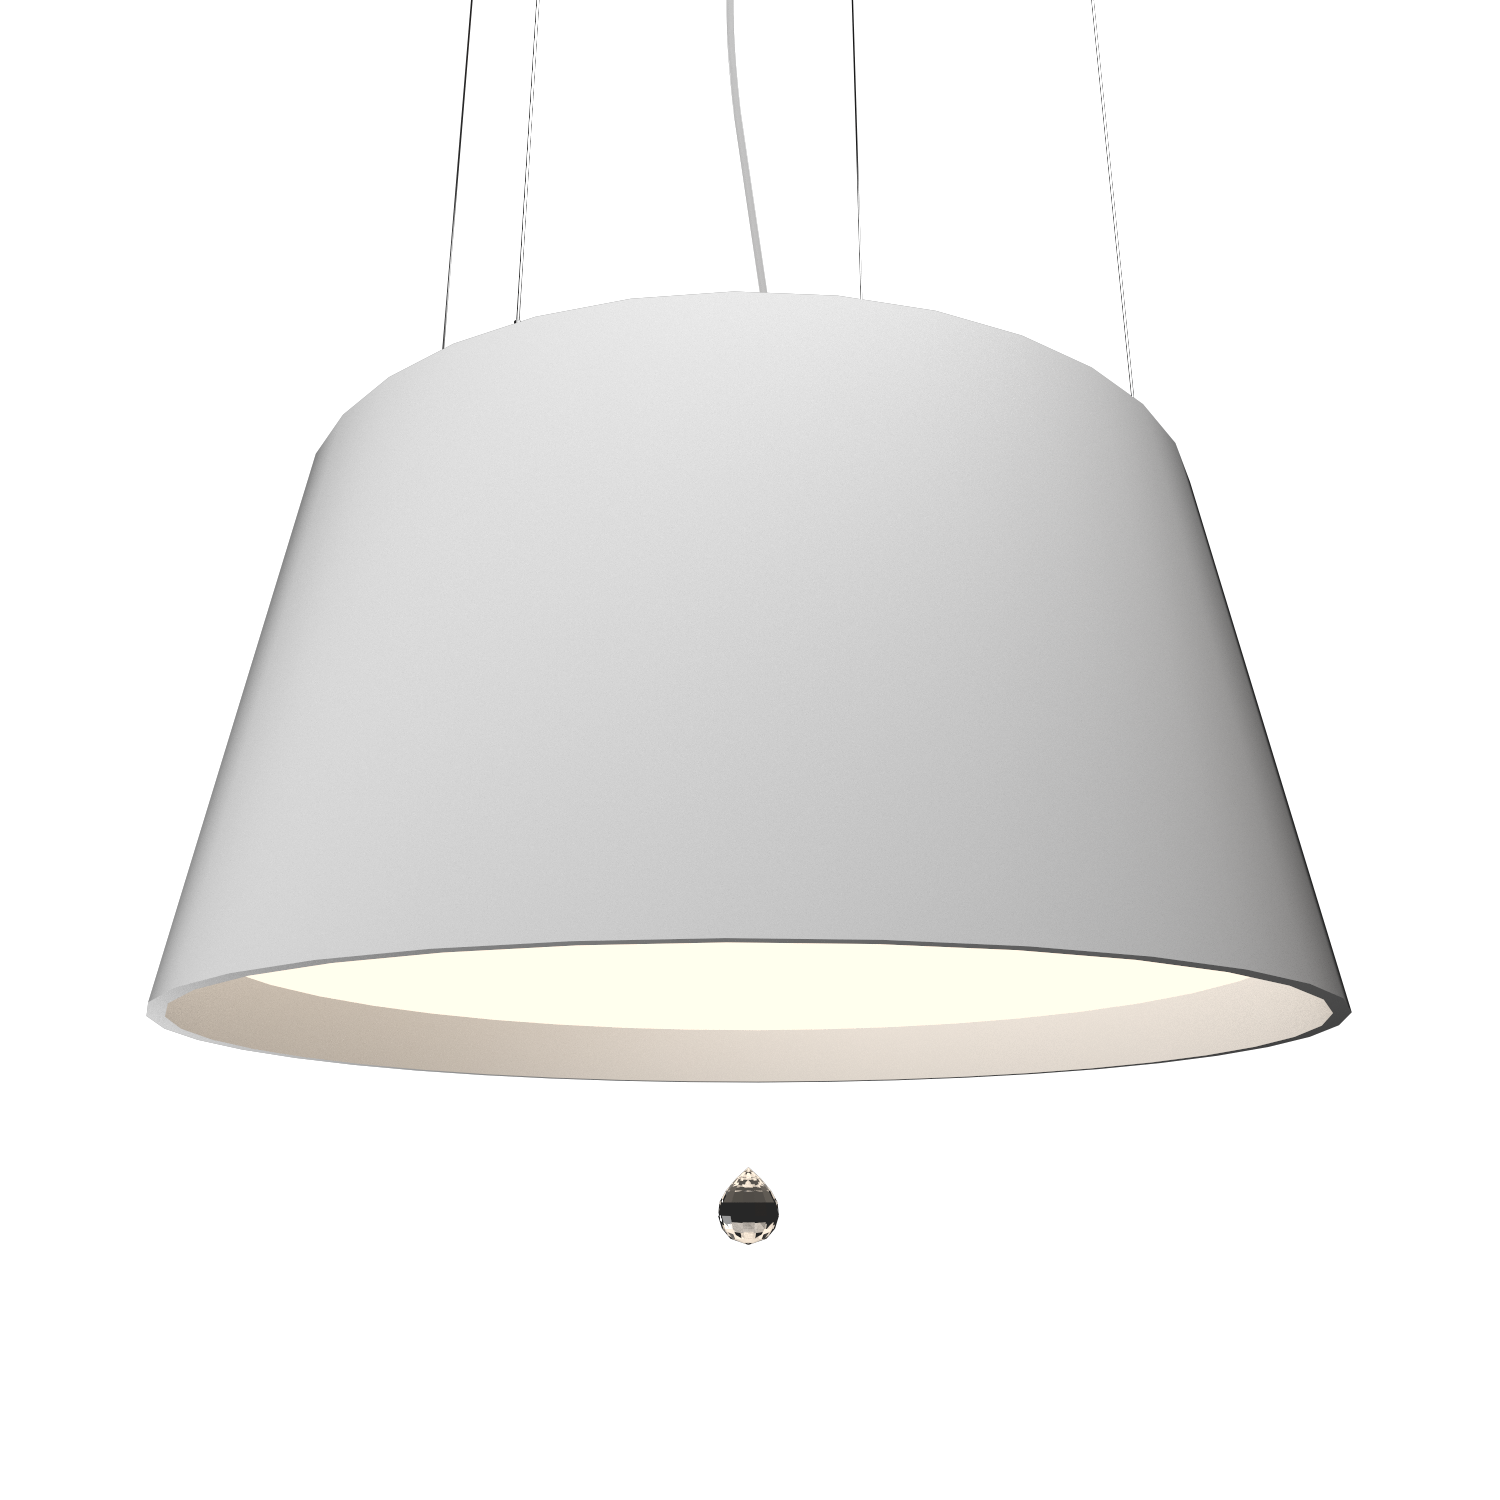 Pendant Lamp Conical with Crystal 255C - Cristais Line Accord Lighting | 07. White